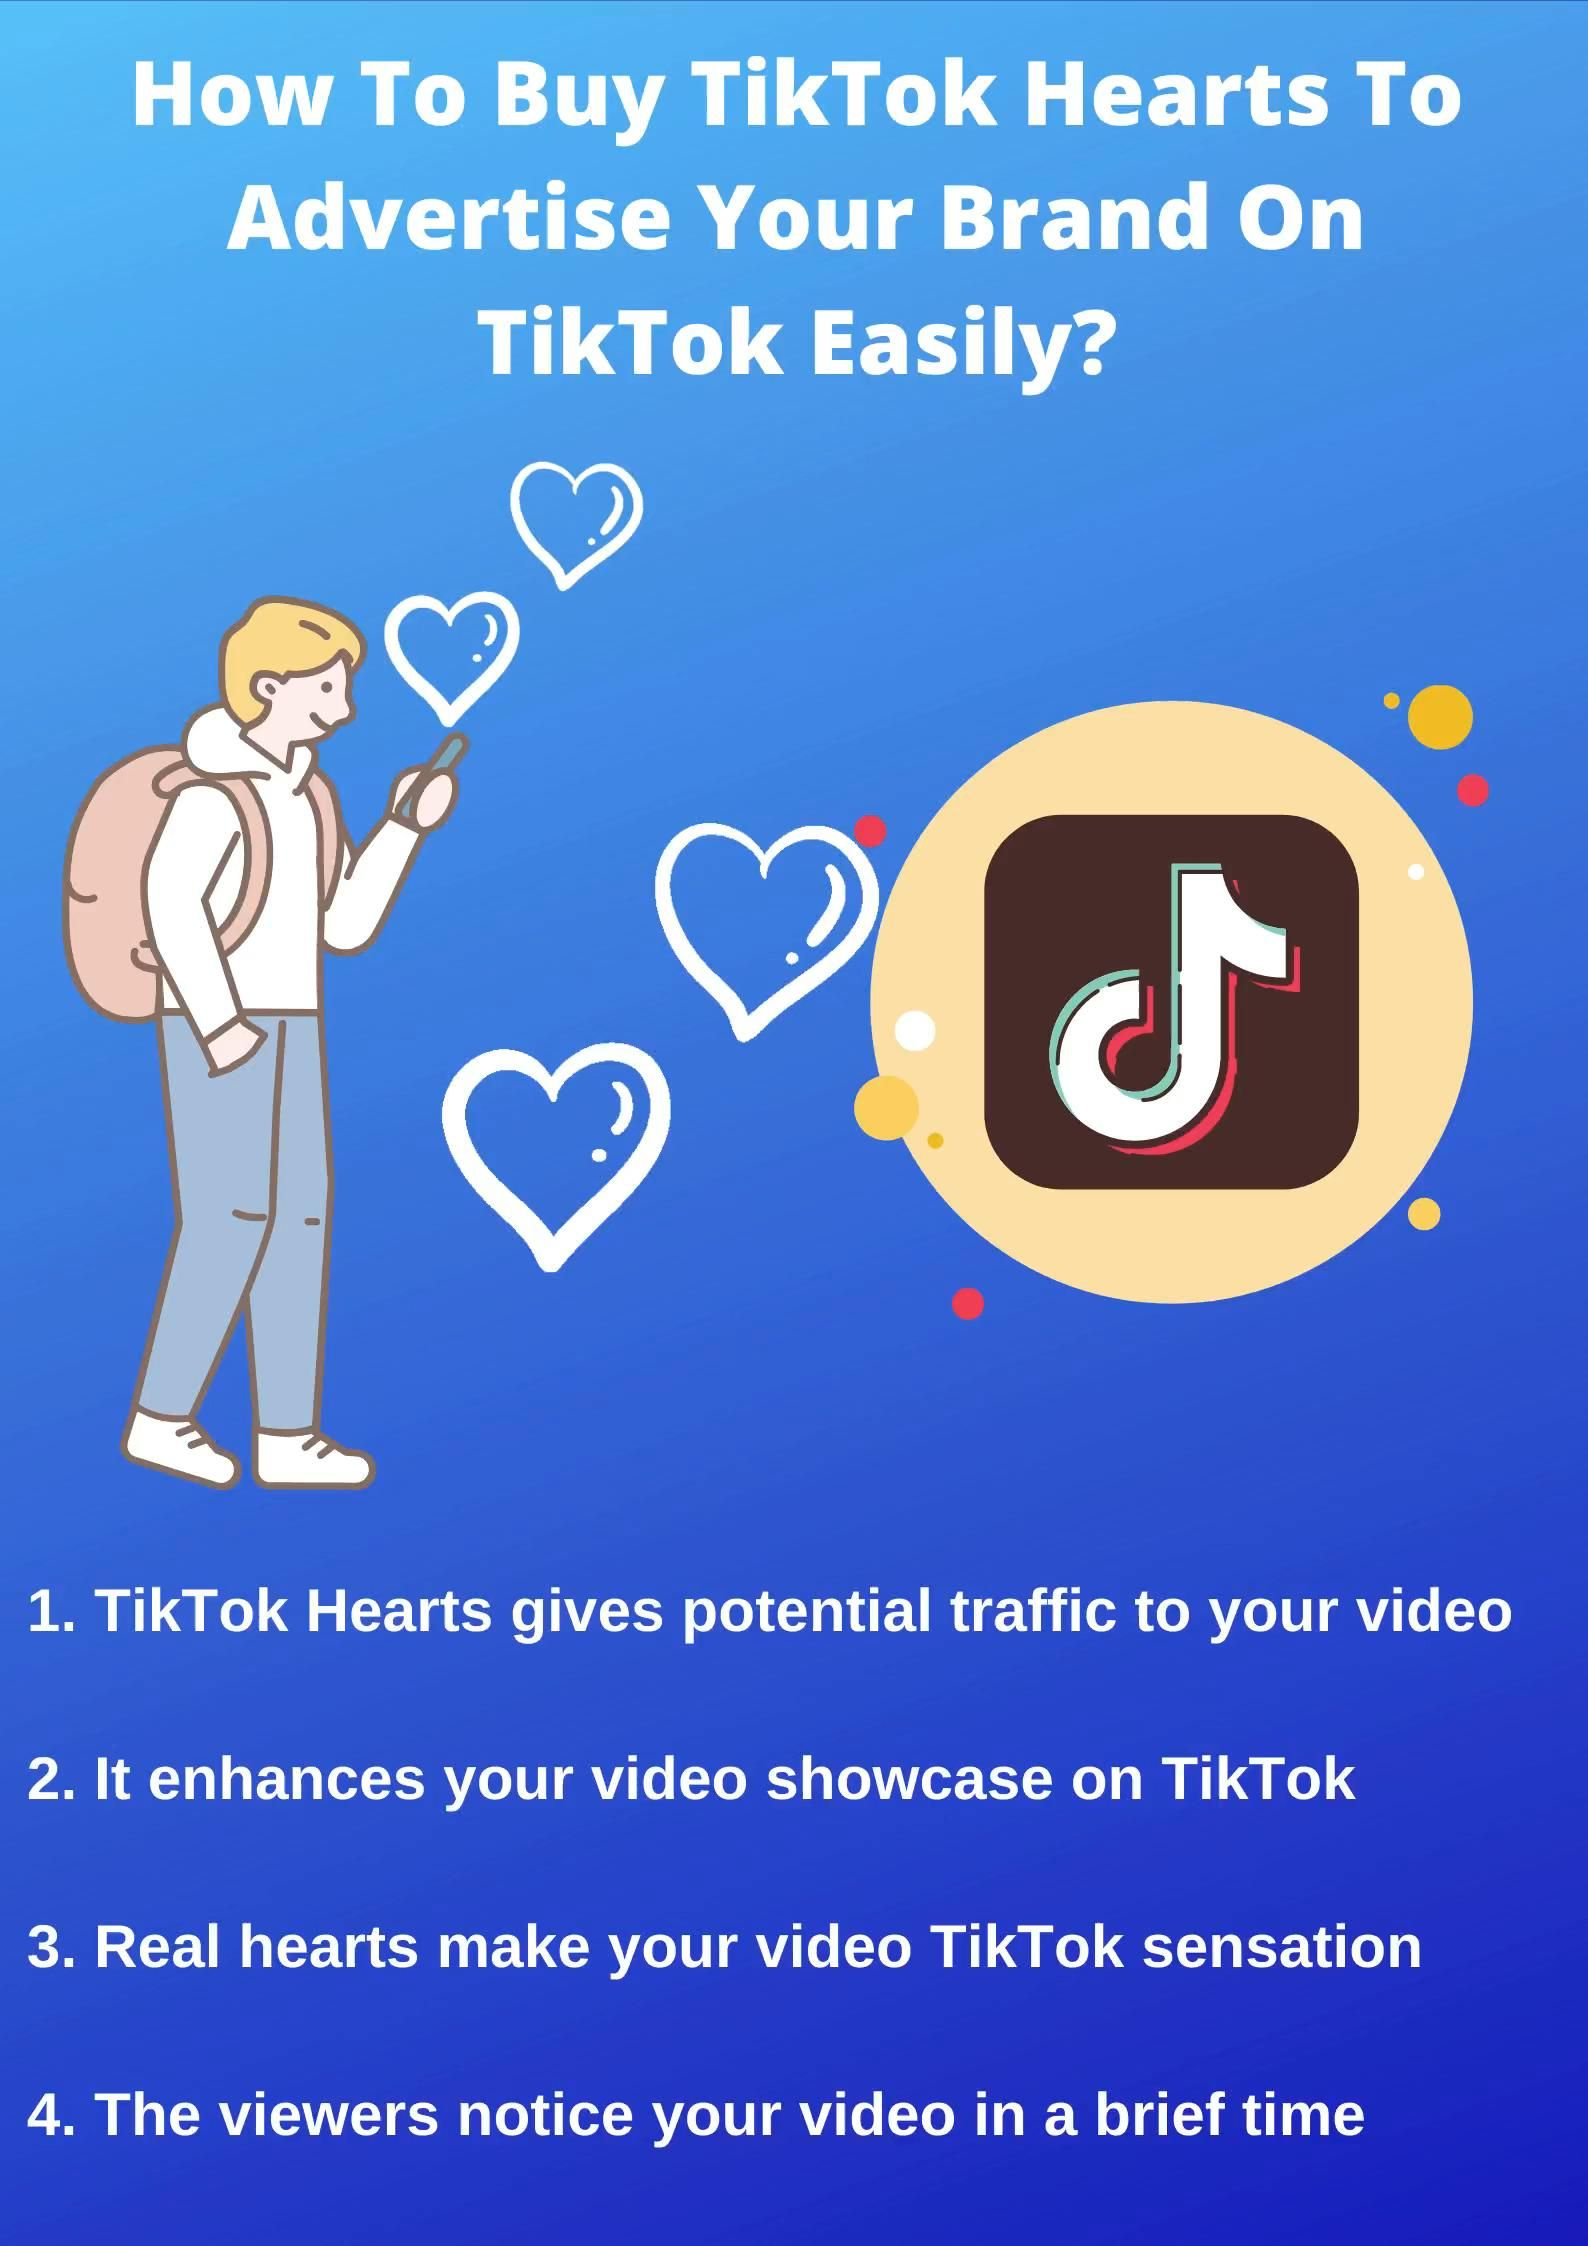 How To Buy Tiktok Hearts To Advertise Your Brand On Tiktok Easily Video Brand Promotion Social Media Services You Videos